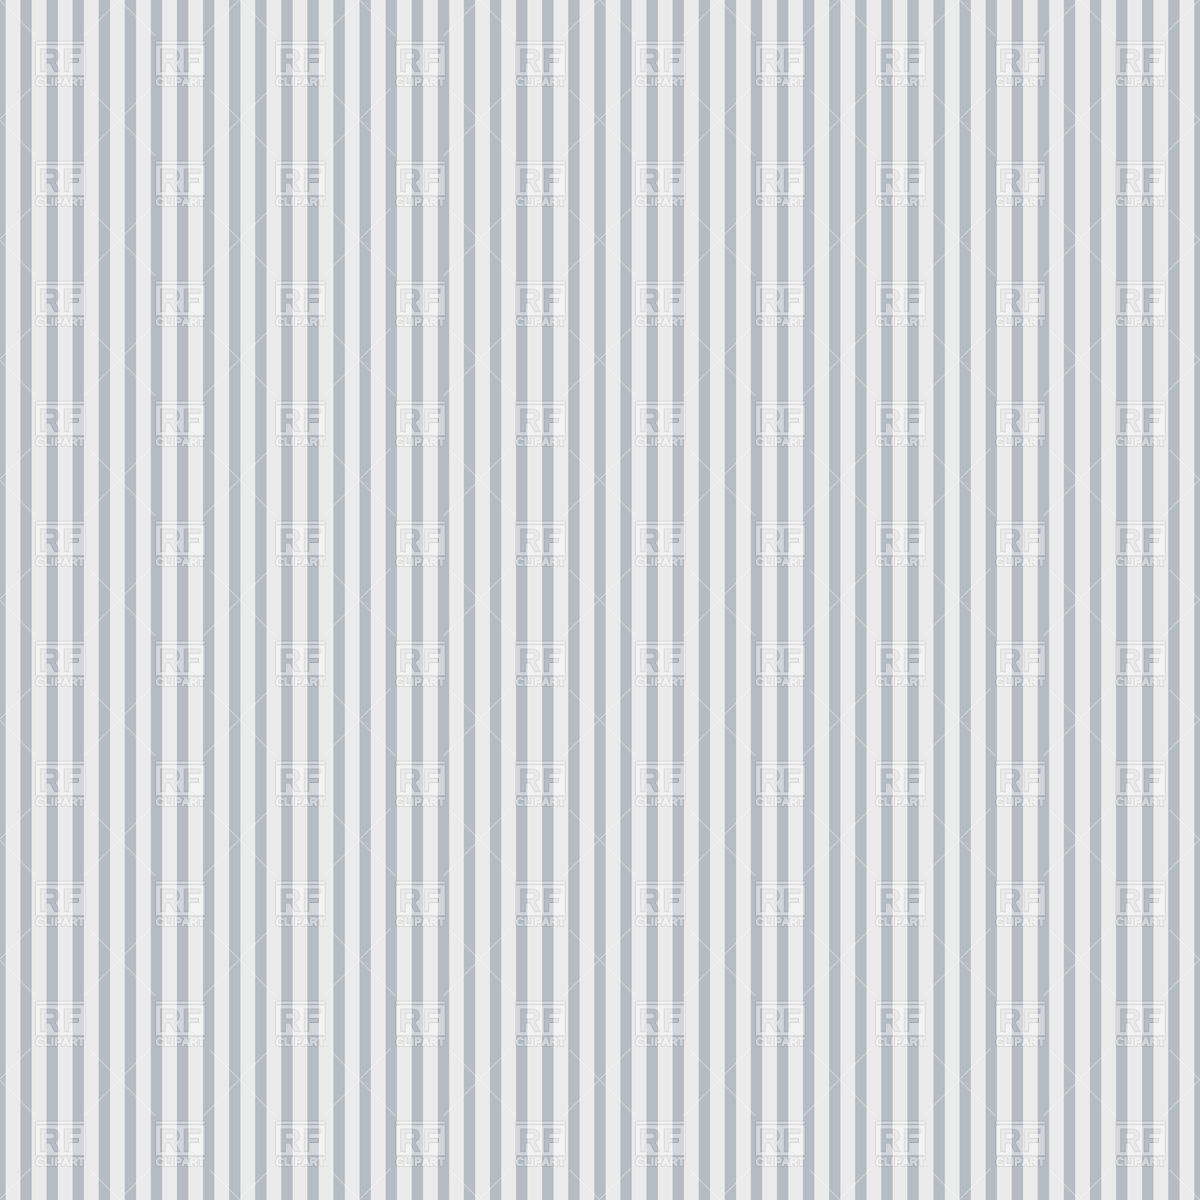 Grey striped background with vertical lines.